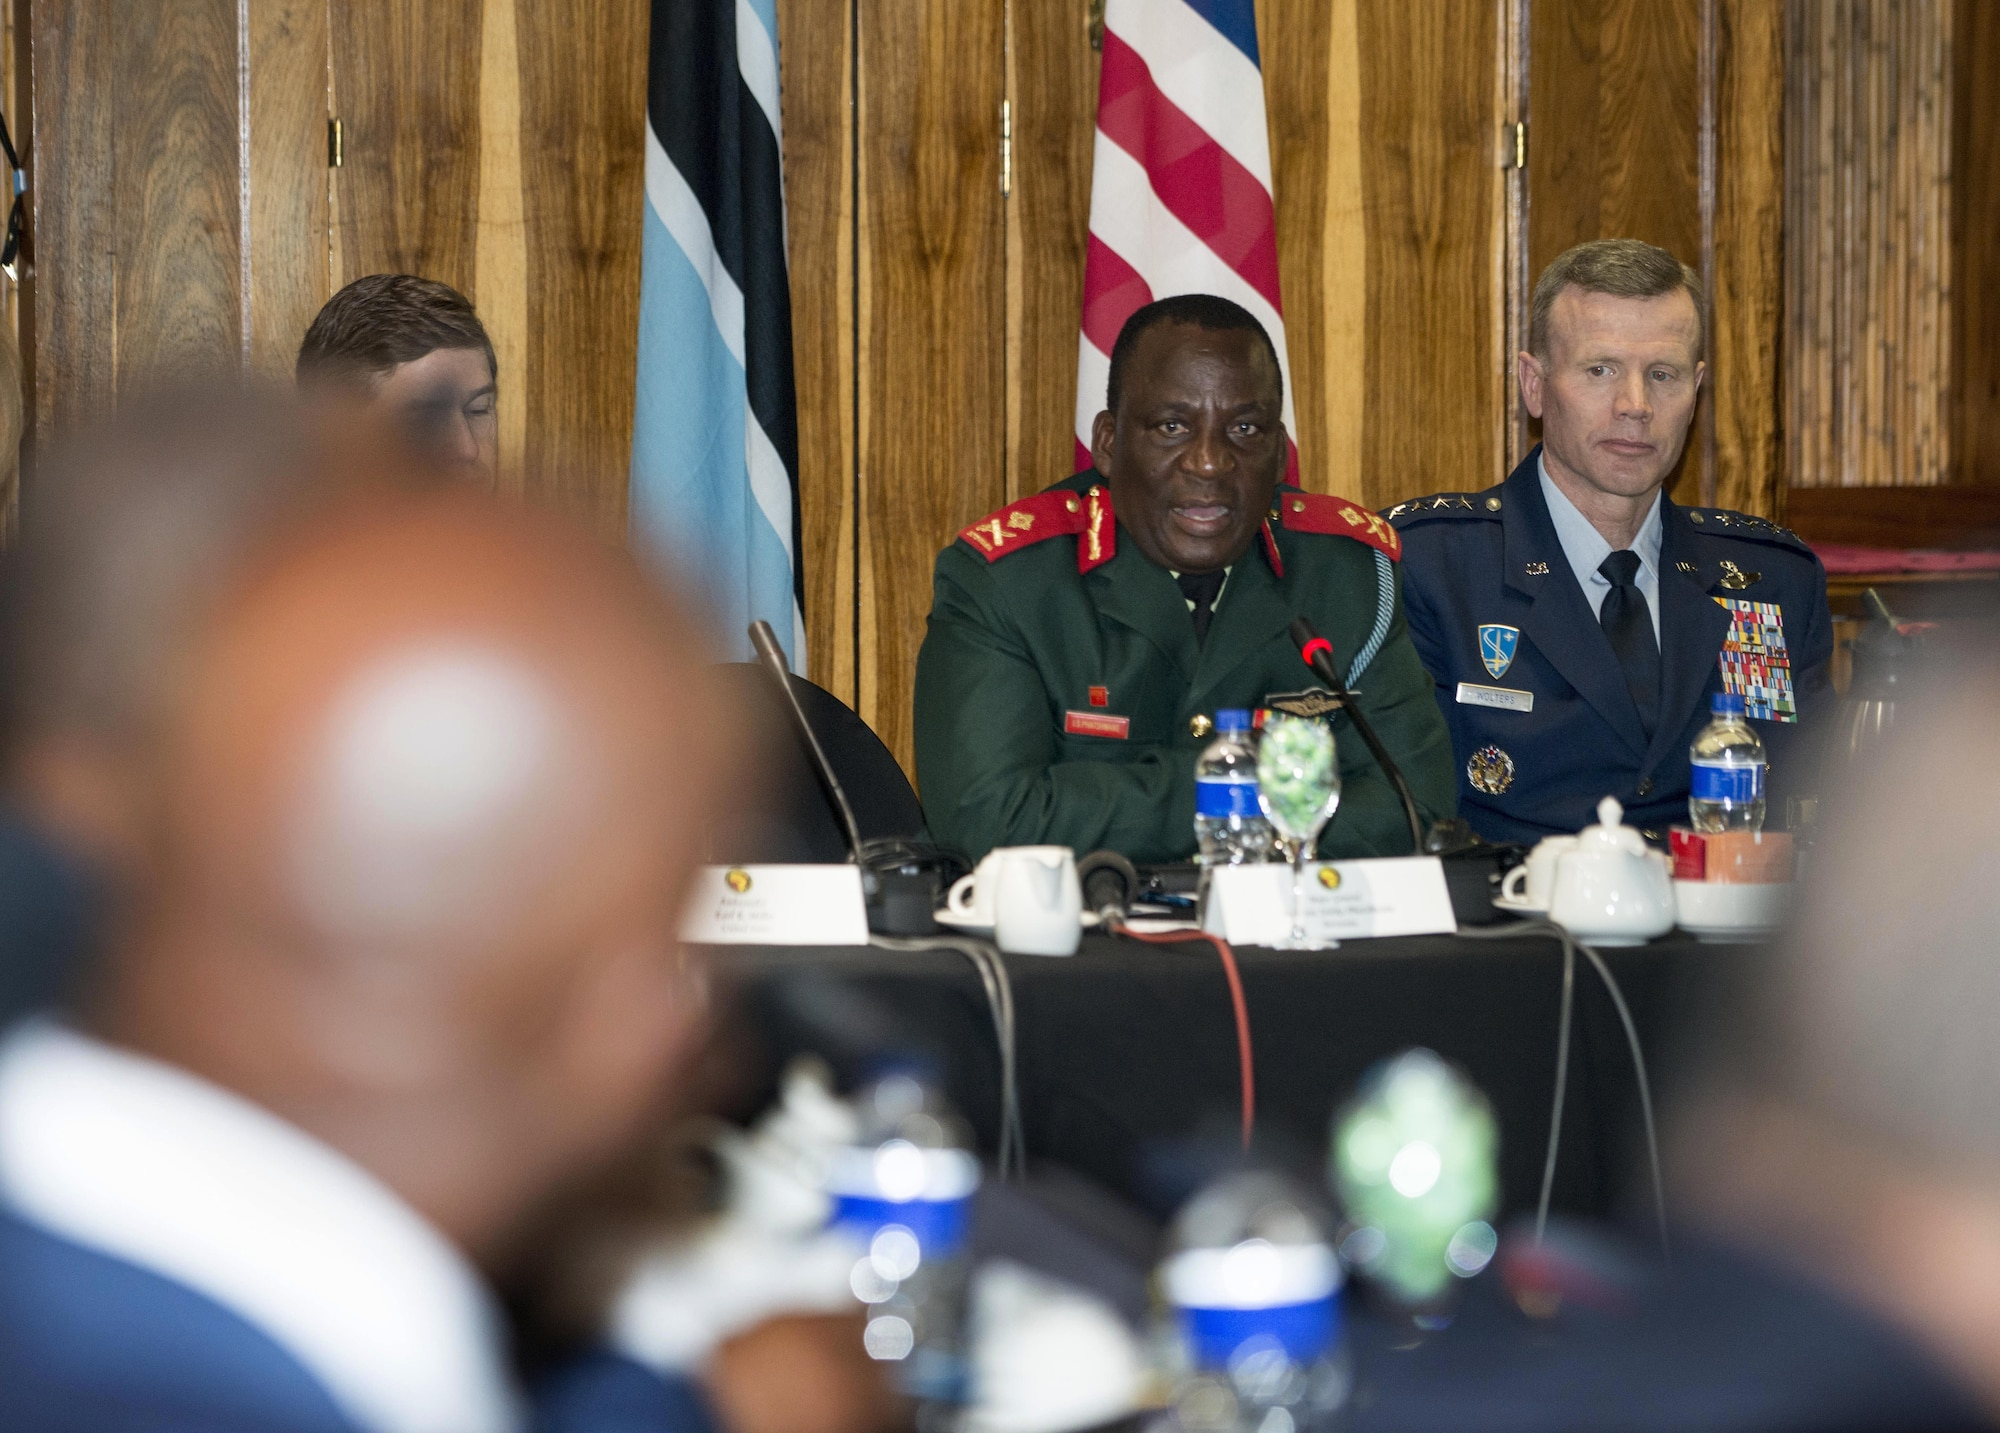 Maj. Gen. Innocent S. Phatshwana, Botswana Defence Force Air Arm commander, speaks during the opening ceremony of the 2017 African Air Chiefs Symposium in Kasane, Botswana May 16, 2017. This year's conference is co-hosted by the United States and Botswana and will focus on the training aspect of force development. (U.S. Air Force photo by Staff Sgt. Krystal Ardrey)